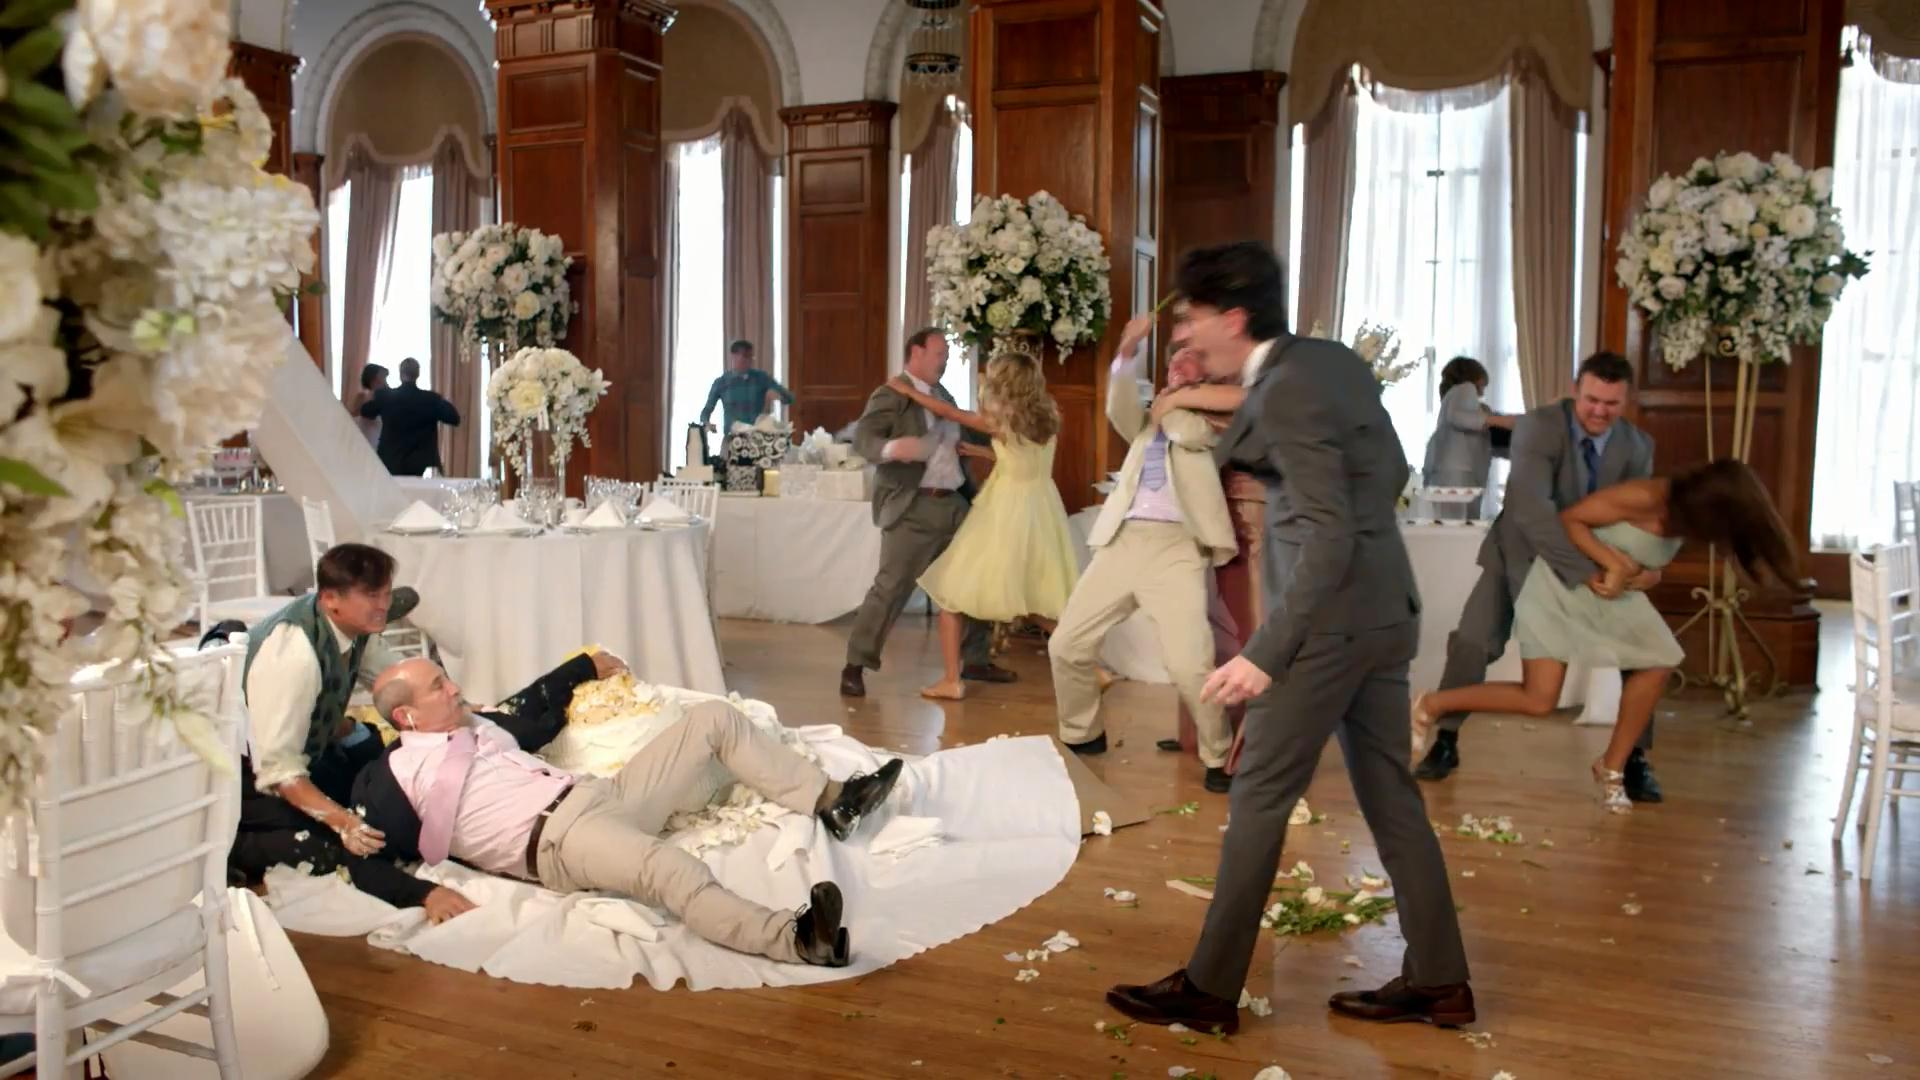 please note, no one was seriously harmed in the making of this photo (and it's certainly not one of our weddings